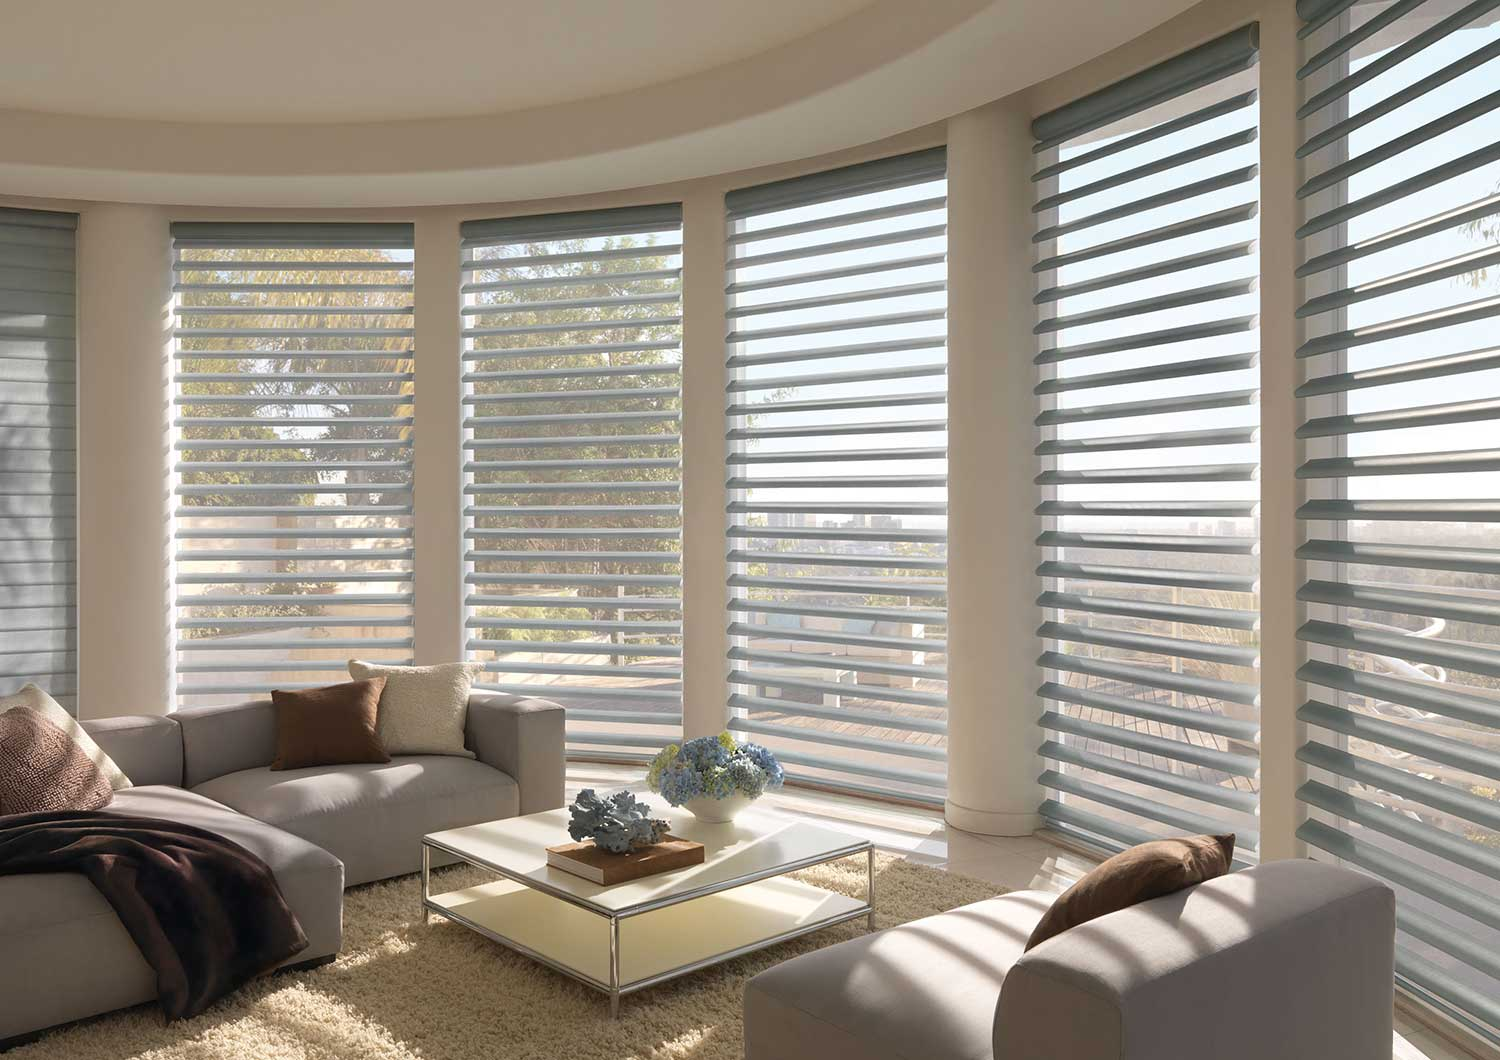 Pirouette® ShadesInvisi-Lift® System - A revolutionary design innovation that allows the vanes to float gracefully with no obvious cords to mar the beauty or the view through the sheer.